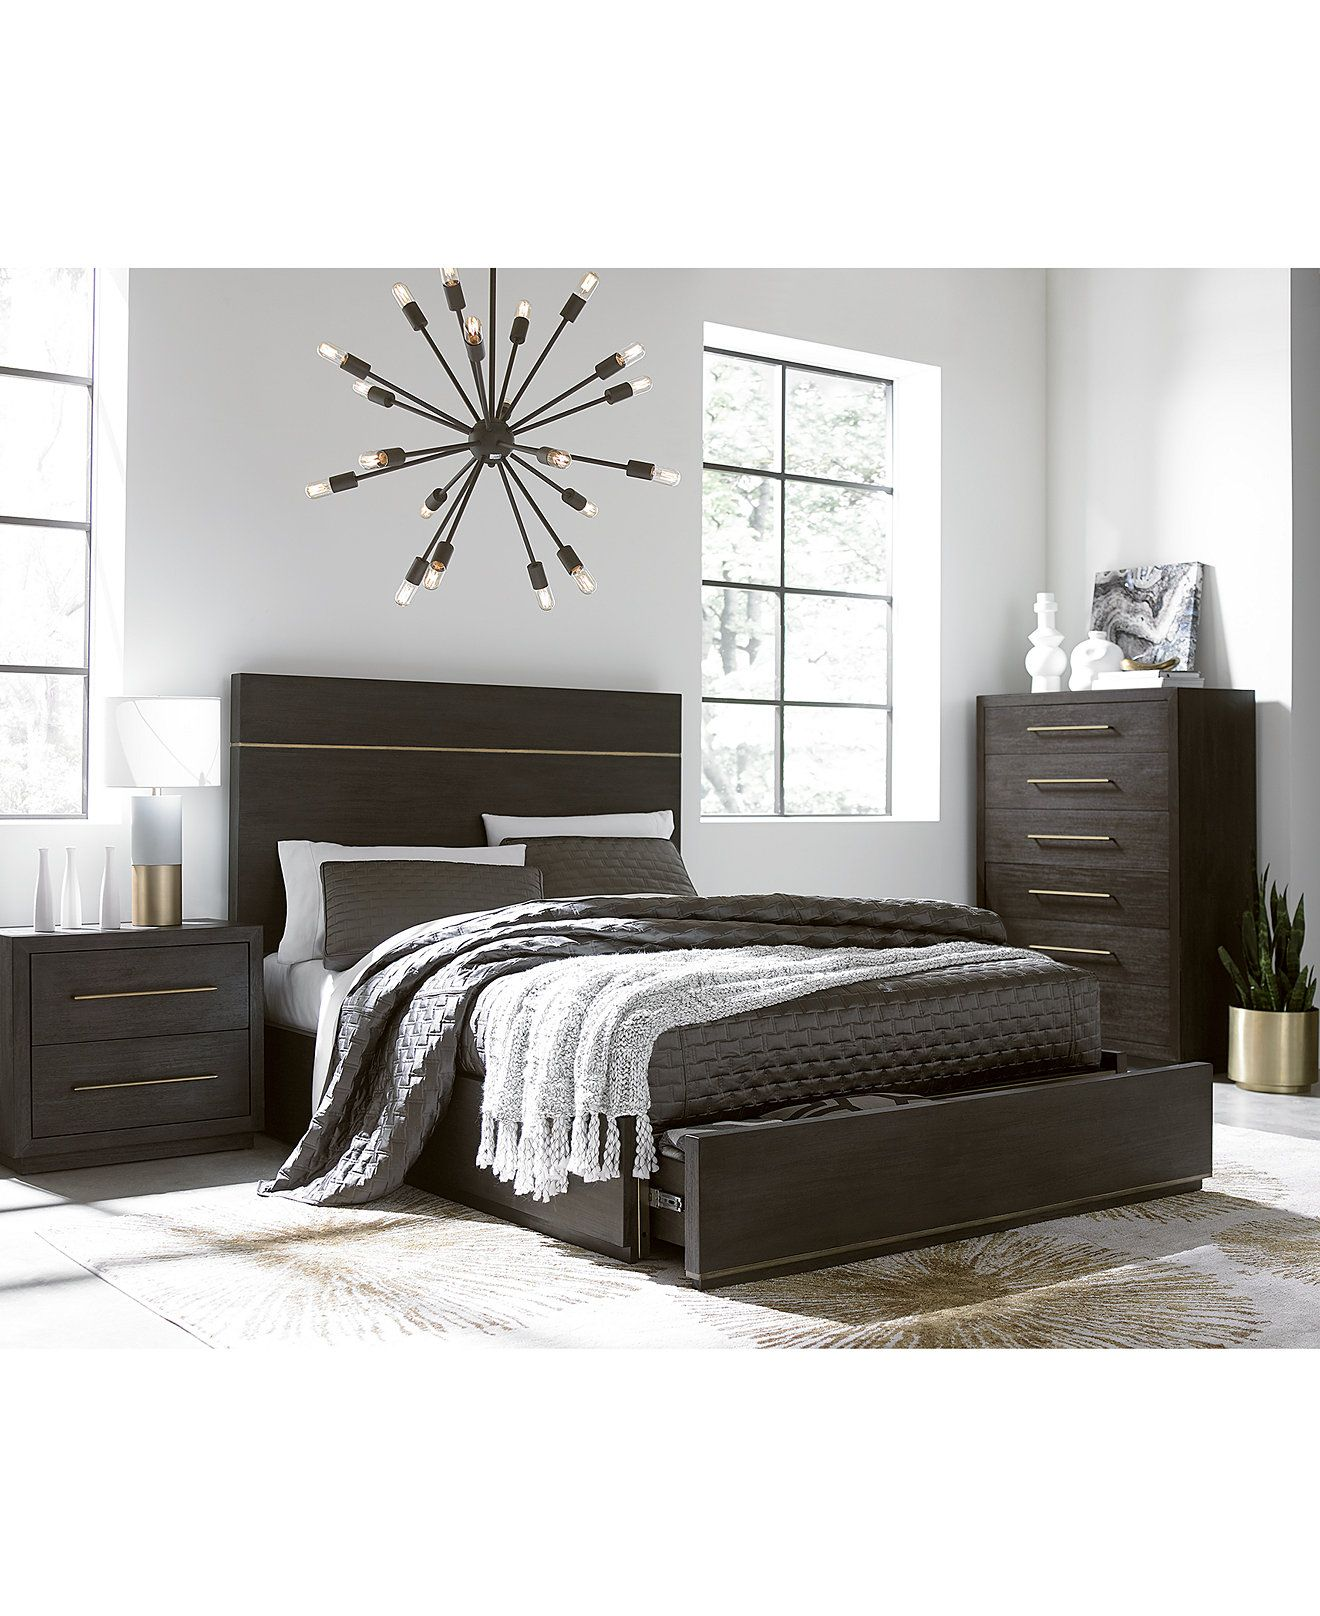 Furniture Cambridge Storage Platform Bedroom Furniture Collection